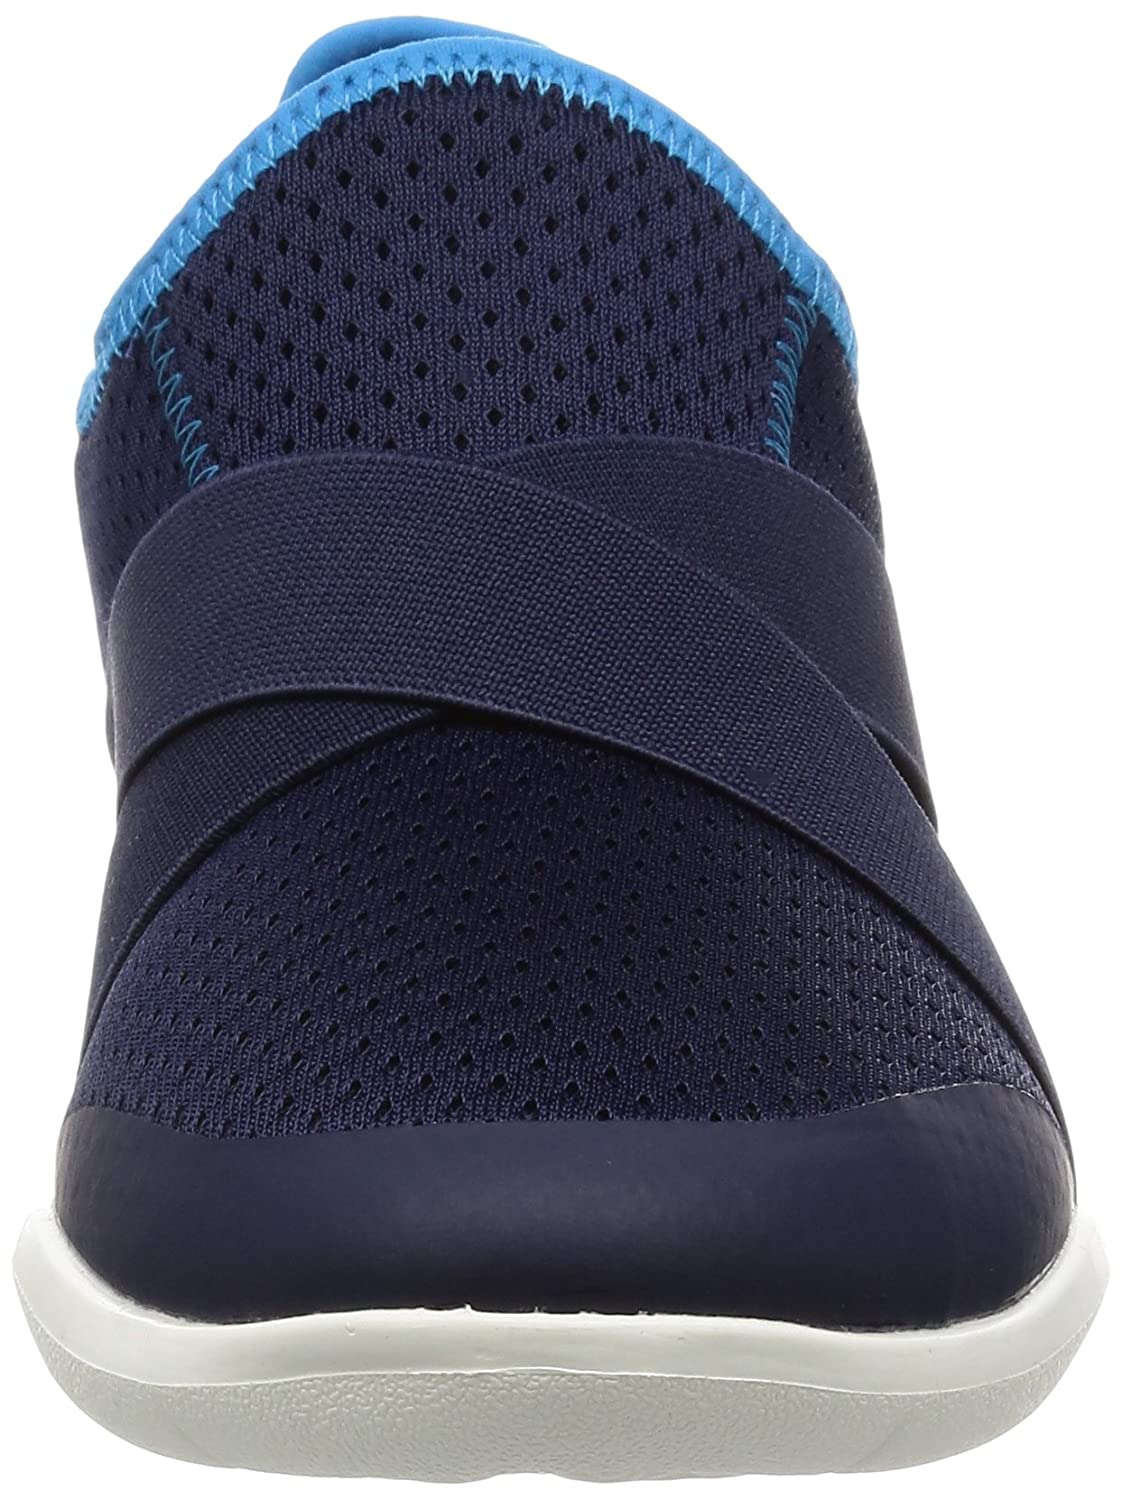 Crocs Damen Swiftwater (Sea X-Strap Pantoletten, schwarz, Blau (Sea Swiftwater / Blau / Weiß / Strap 462b) ae0871